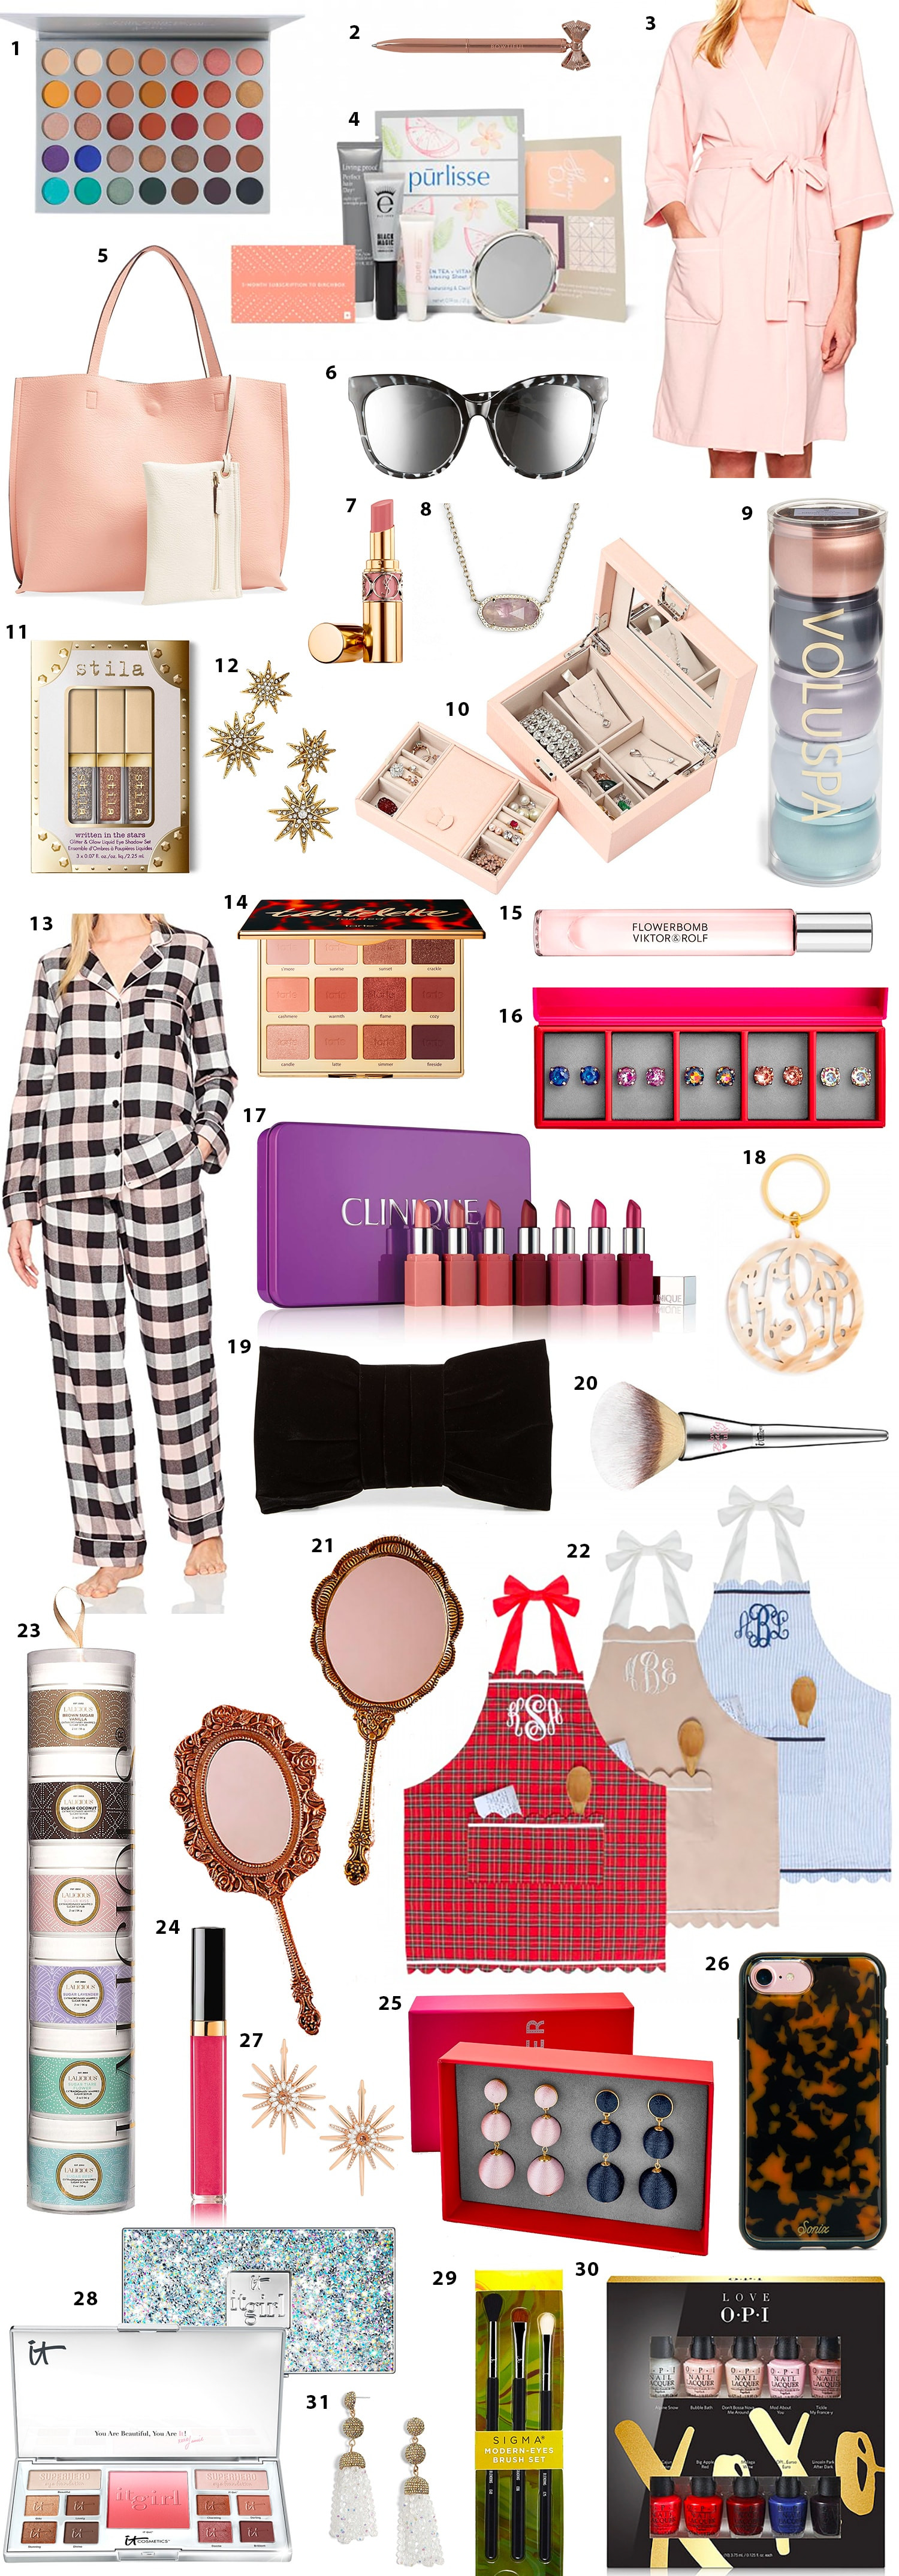 Best ideas about Gift Ideas Under 50 . Save or Pin Christmas Gift Ideas for Women Under $50 Now.